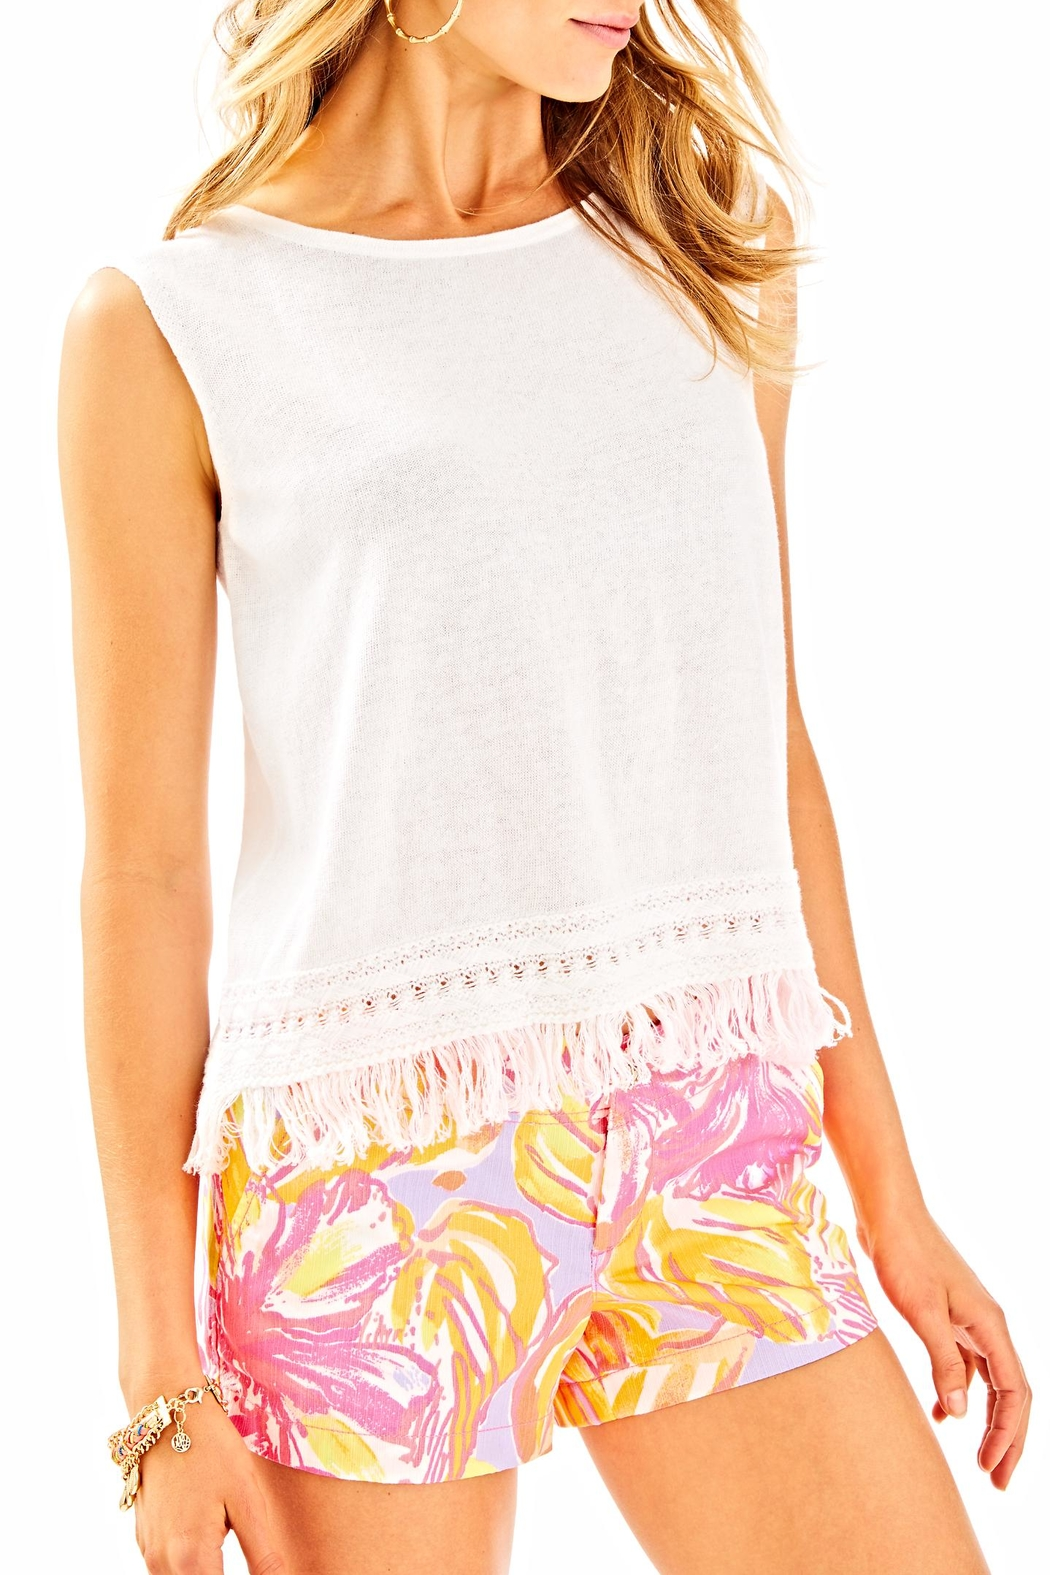 Lilly Pulitzer Edenwood Sweater Tank Top - Main Image